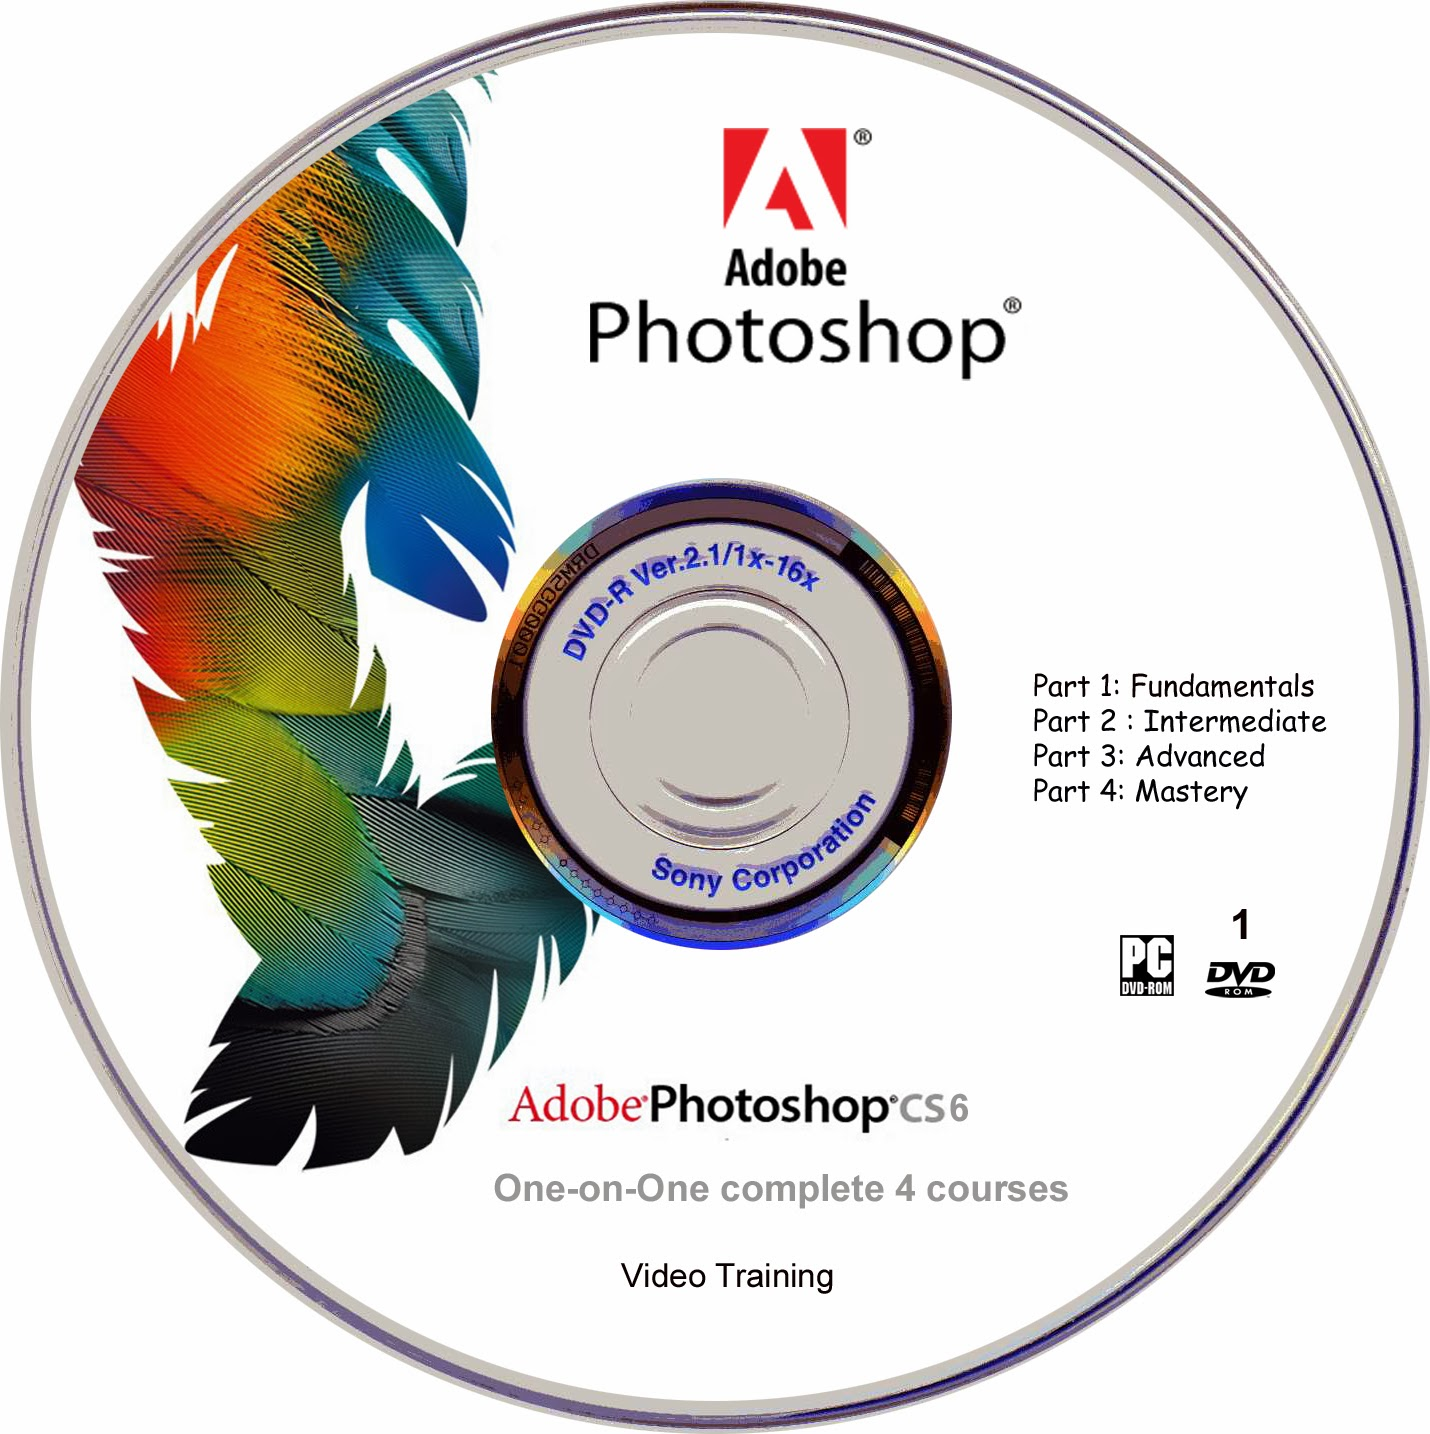 Adobe Adobe Photoshop CS6 Free Download Full Version is Best Editing Software and you can see alot of other software in market but Adobe Photoshop CS6 is best .Adobe Photoshop CS6 Free Download Full Version Windows 7 is Advanced Tools and Alot of Features and More Tools have Been added In This Software.